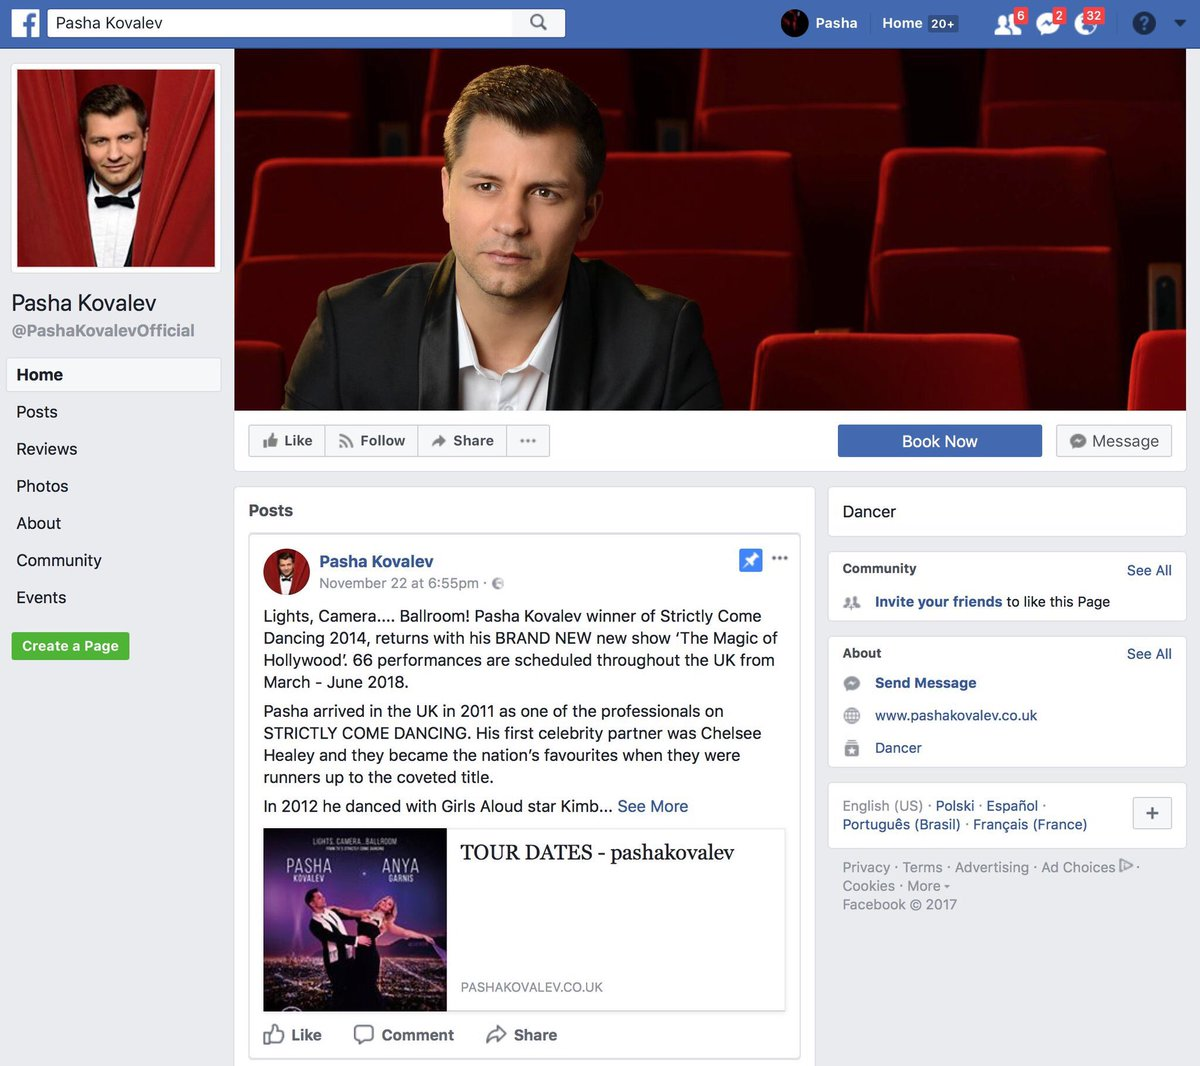 """Pasha Kovalev ar Twitter: """"Hello to my lovely friends and fans - I launched  my new Facebook page recently - https://t.co/BOmQZMxrPO - so I'd be really  grateful if you would you please '"""